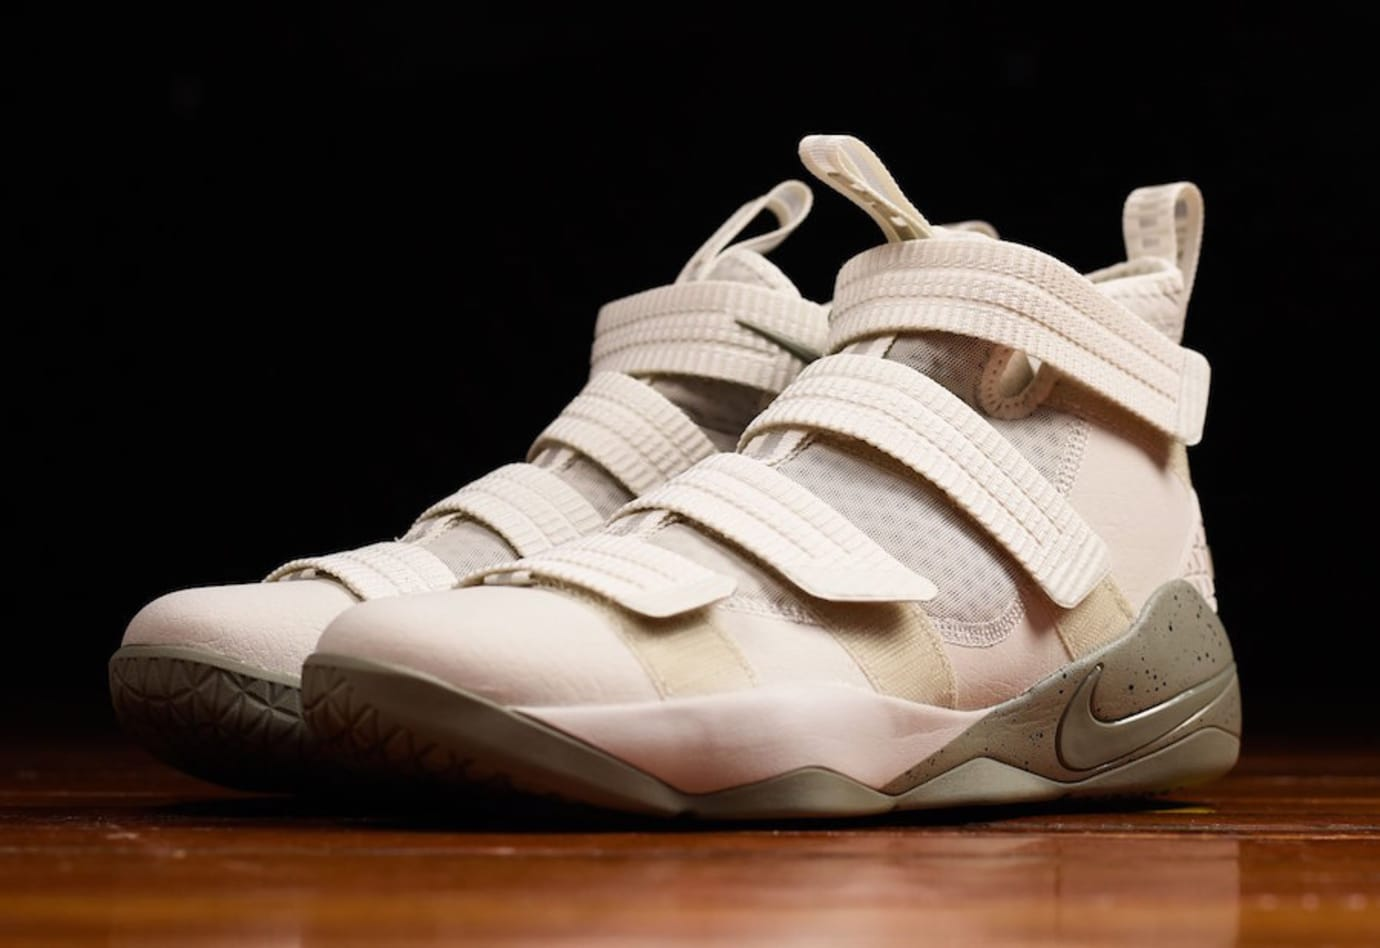 dfab4ac58d9 Nike LeBron Soldier 11 Light Bone Dark Stucco Release Date Front 897646-005